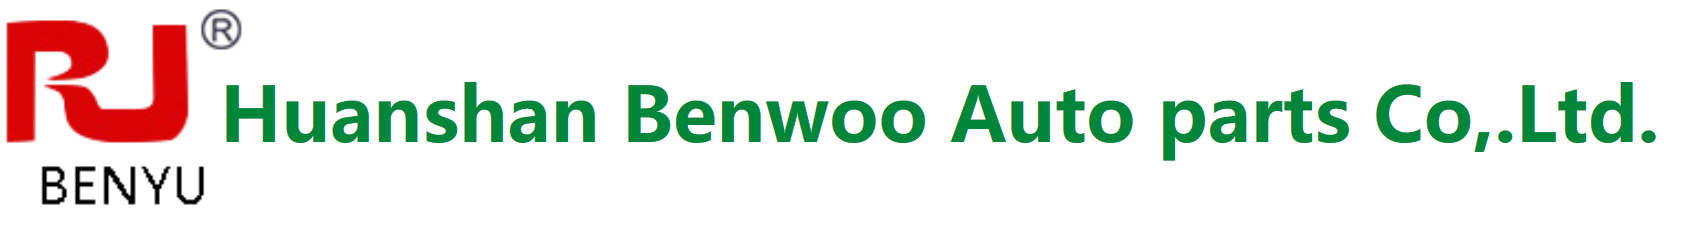 Huangshan bennwoo auto parts company